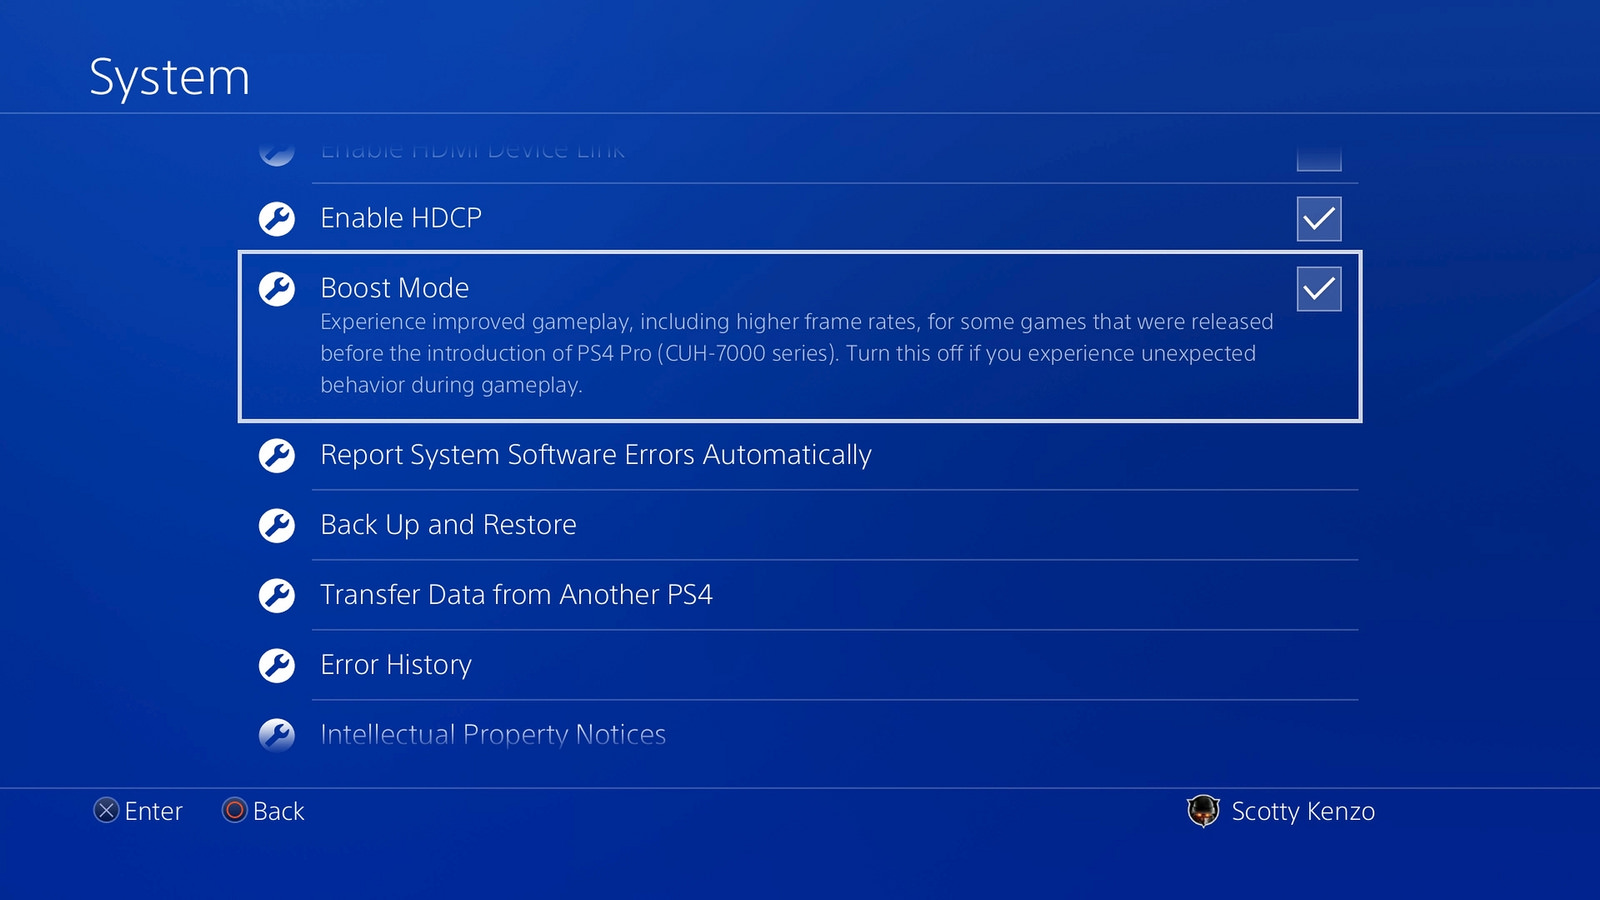 External hard drive support/Pro Boost Mode arrive on the PS4